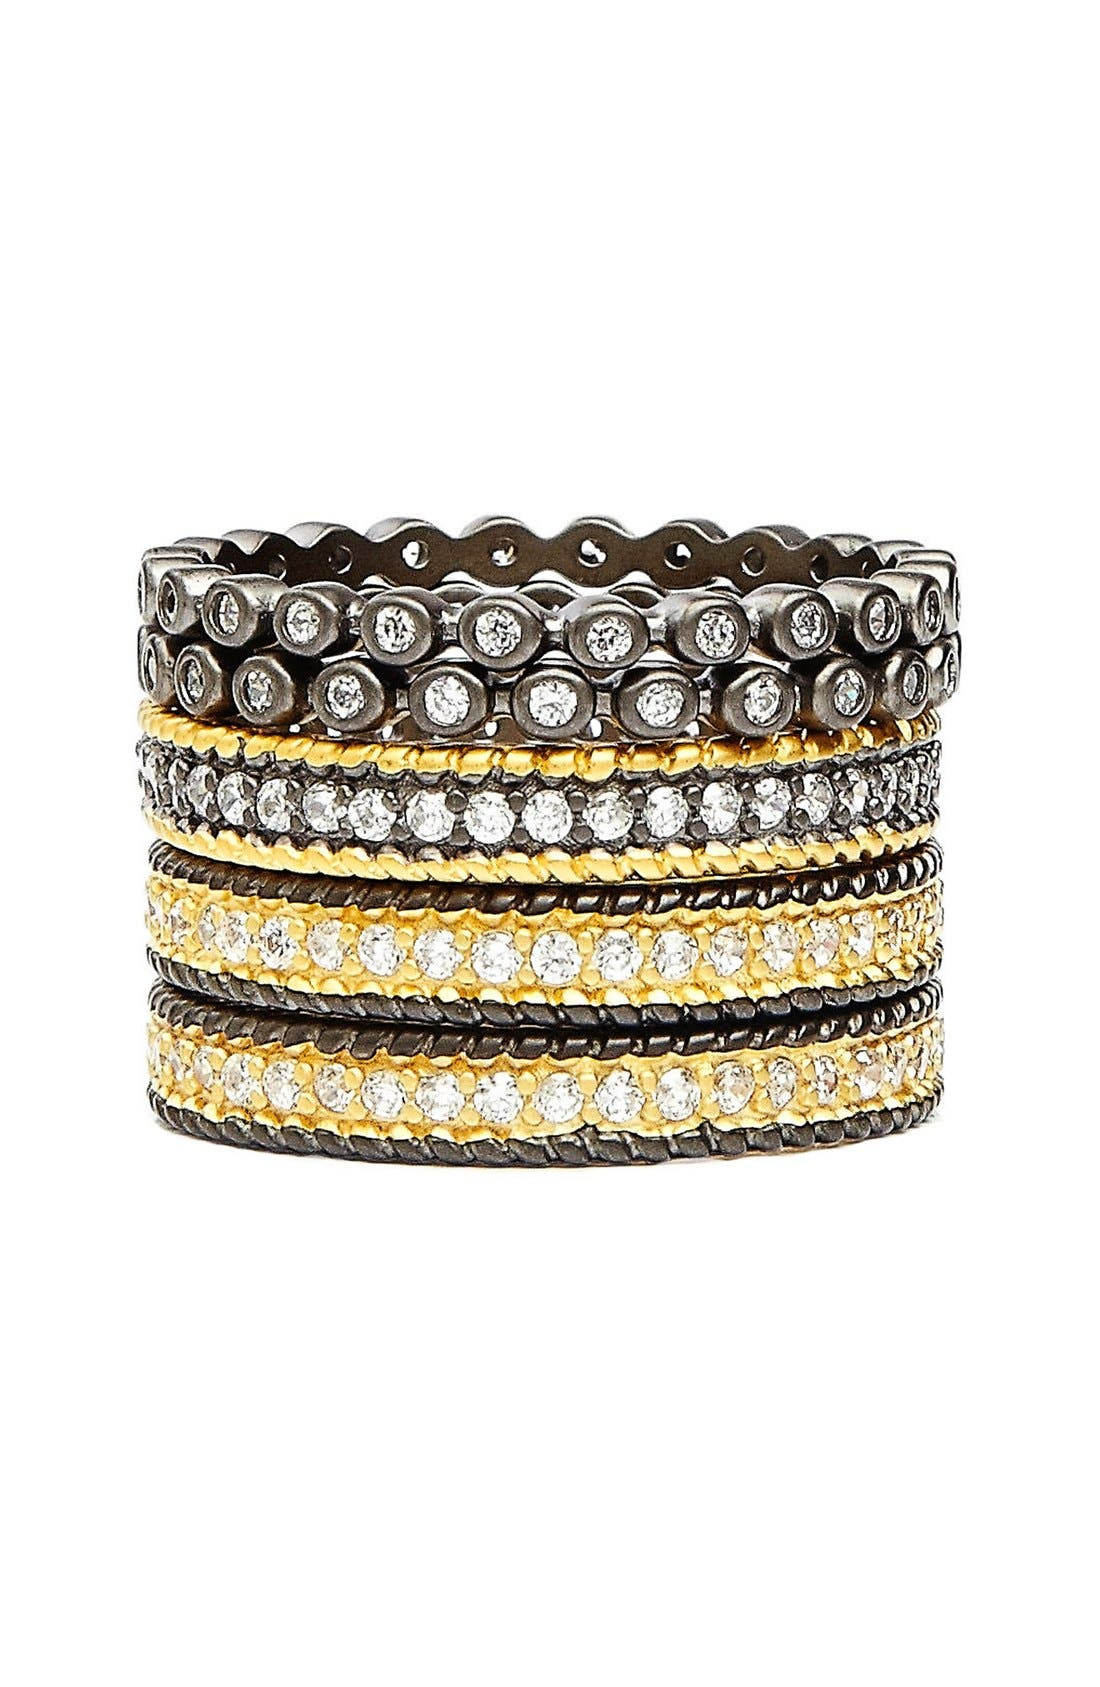 FREIDA ROTHMAN 'The Standards' Stackable Rings (Set of 5)